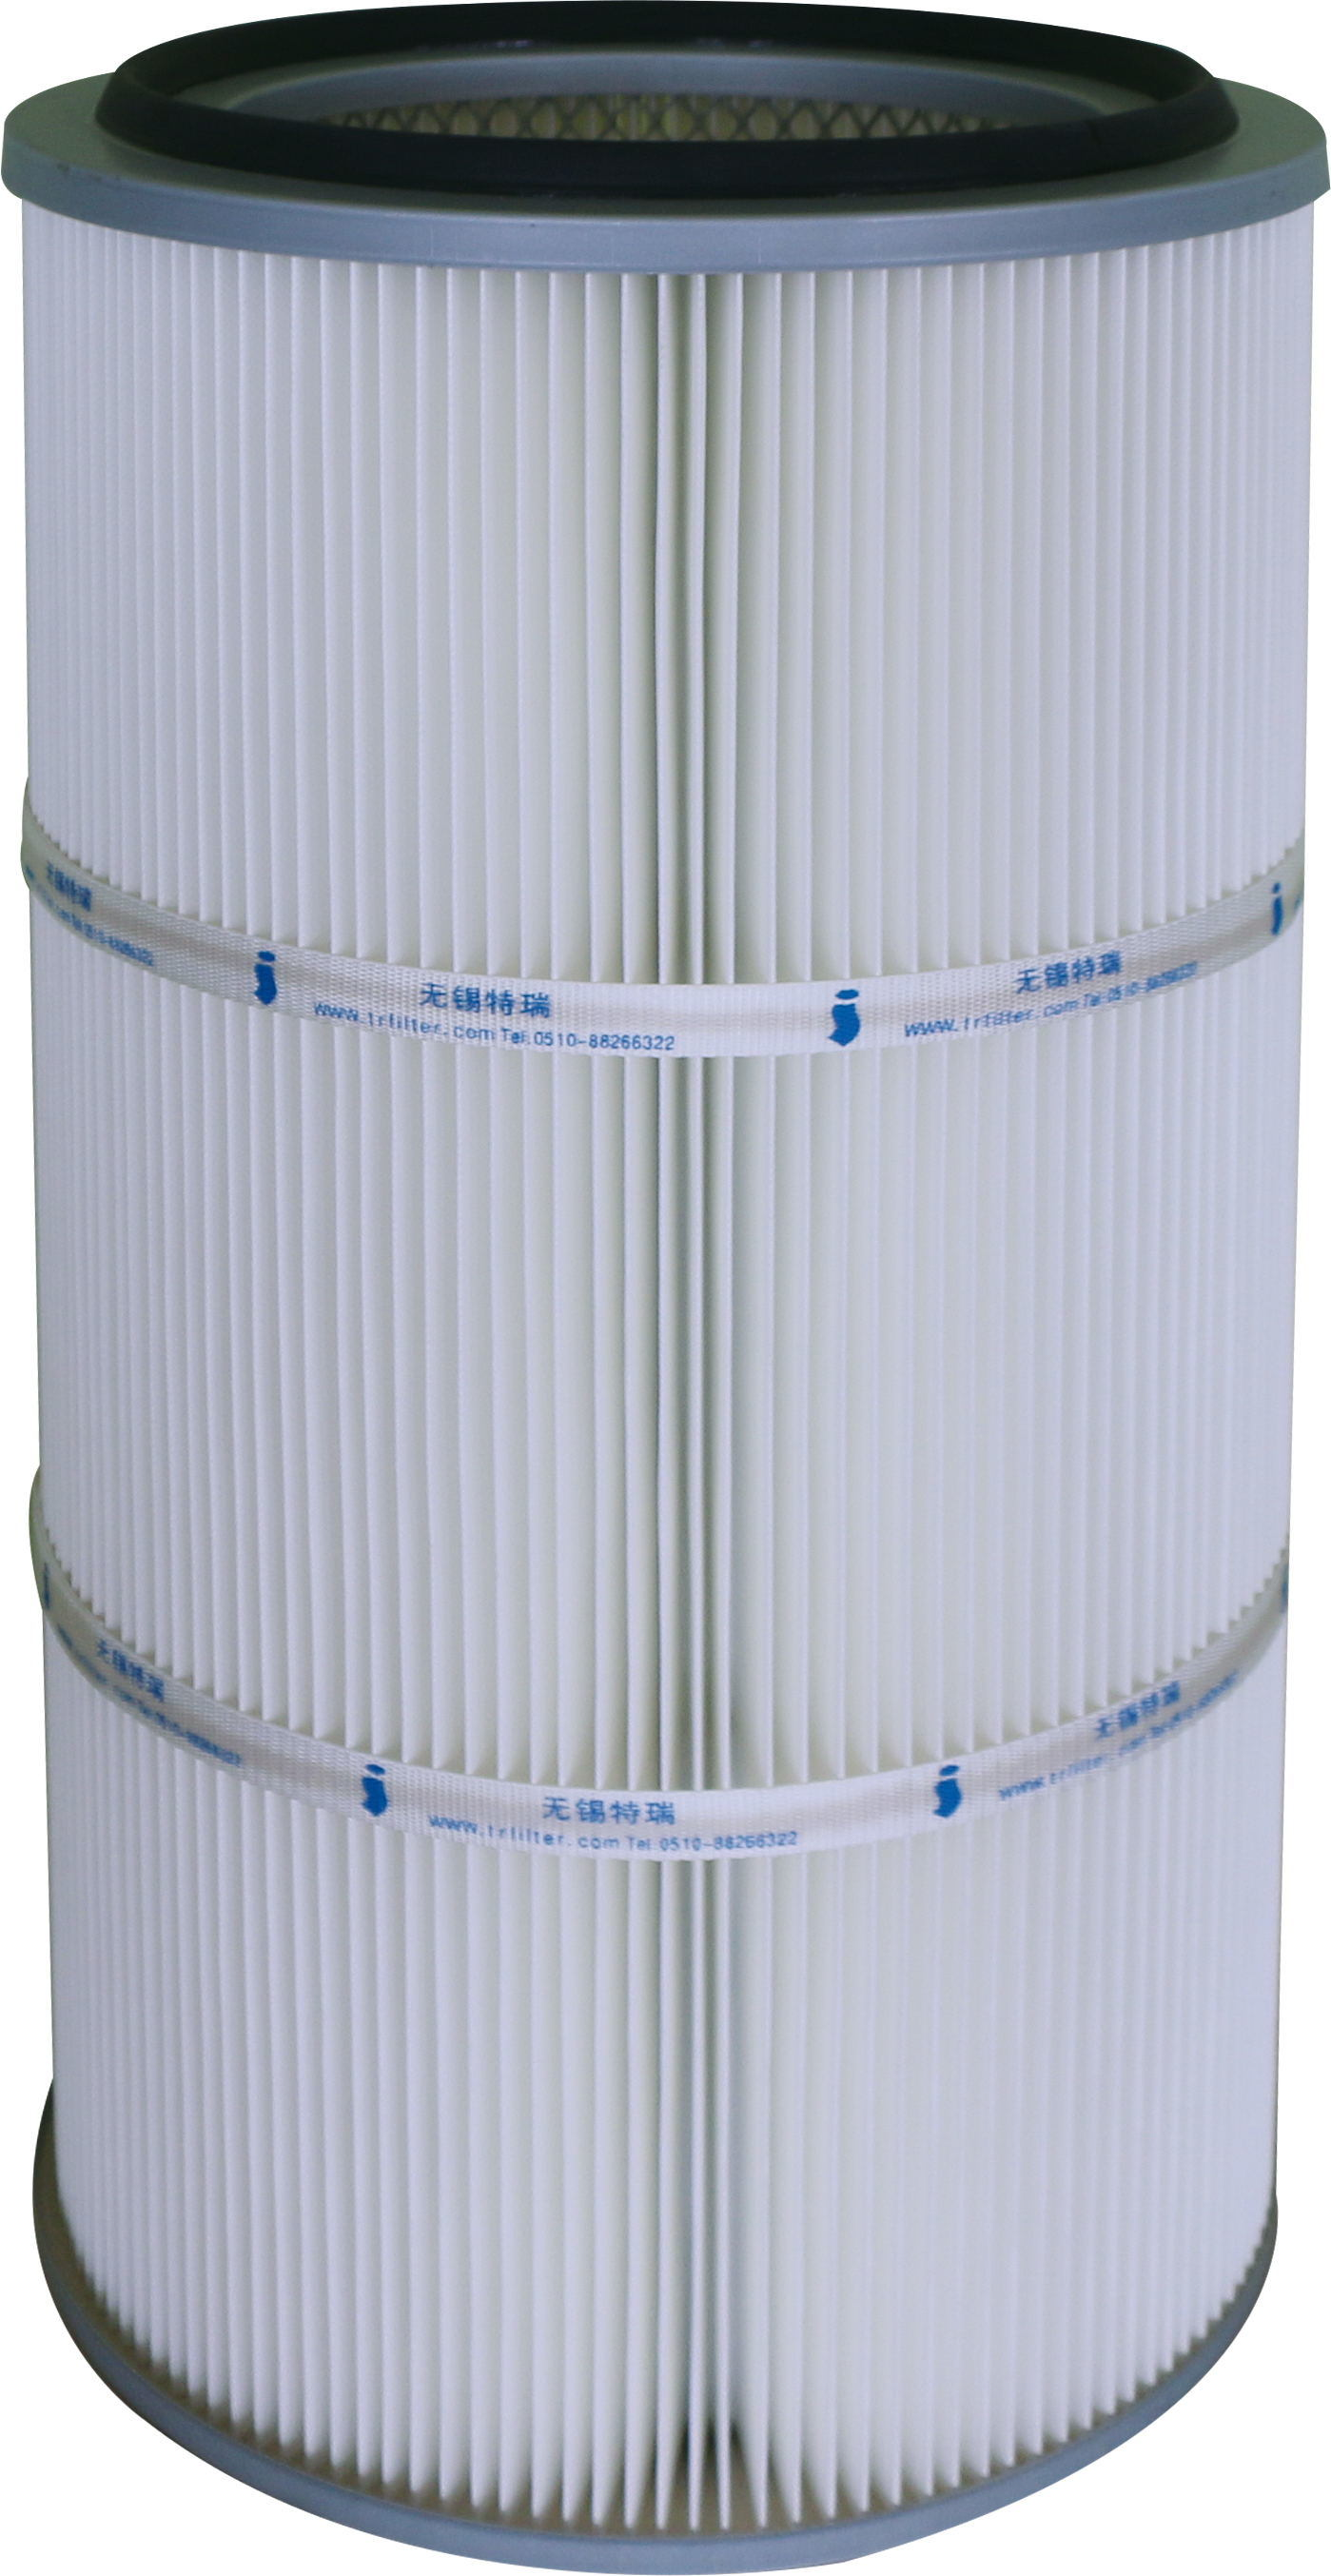 Industrial Dust Collector Filter Cartridge Manufacturer